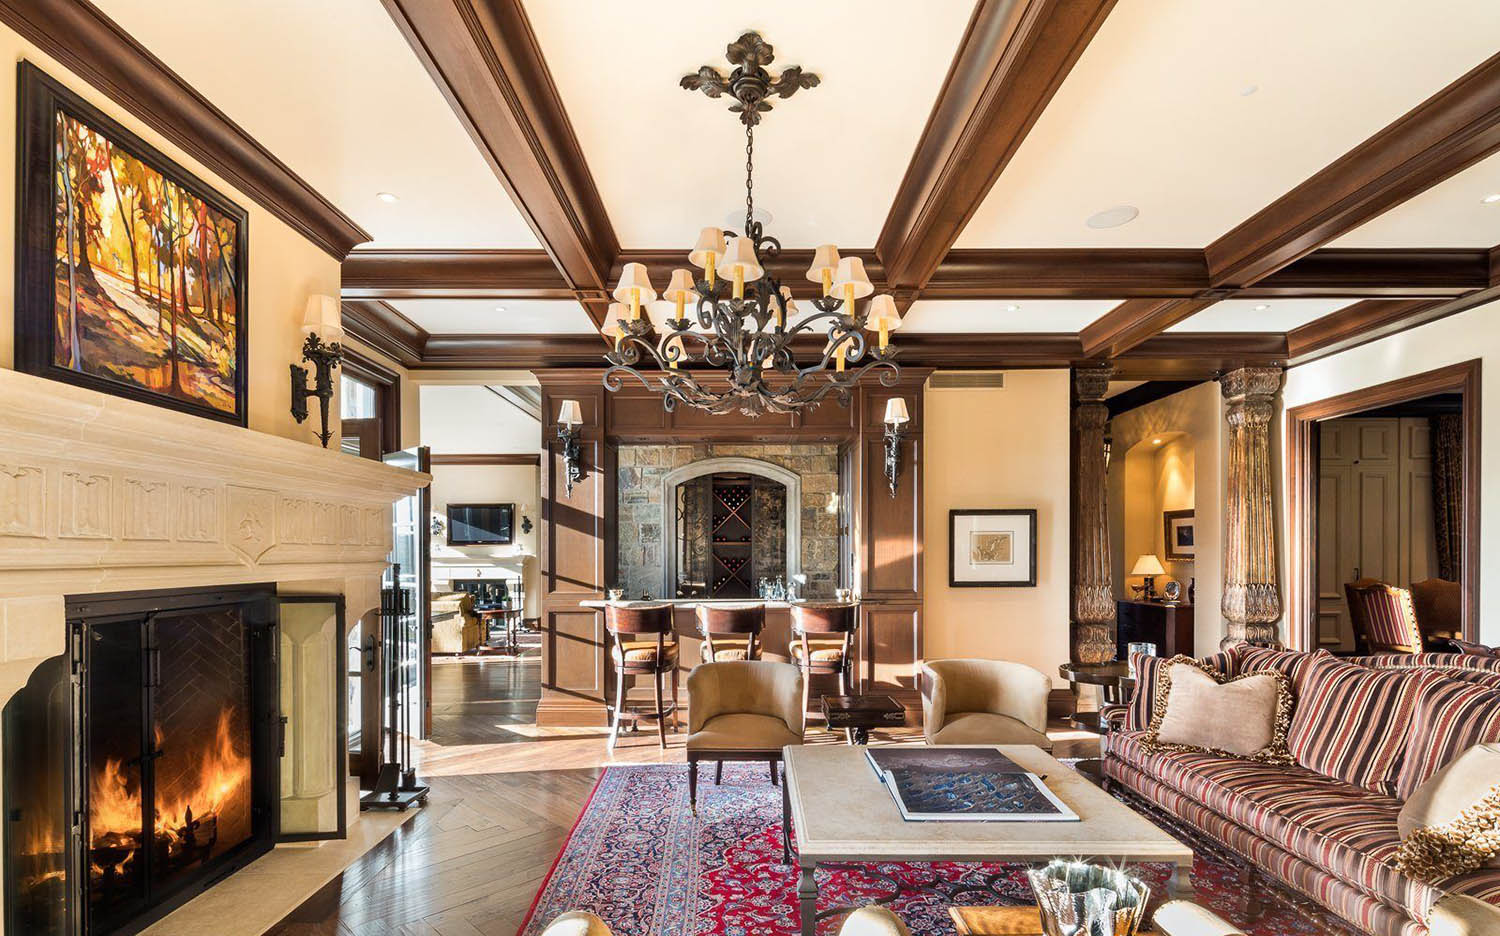 Dark wood coffered ceiling beams with white coffers in a beautiful rustic living room.